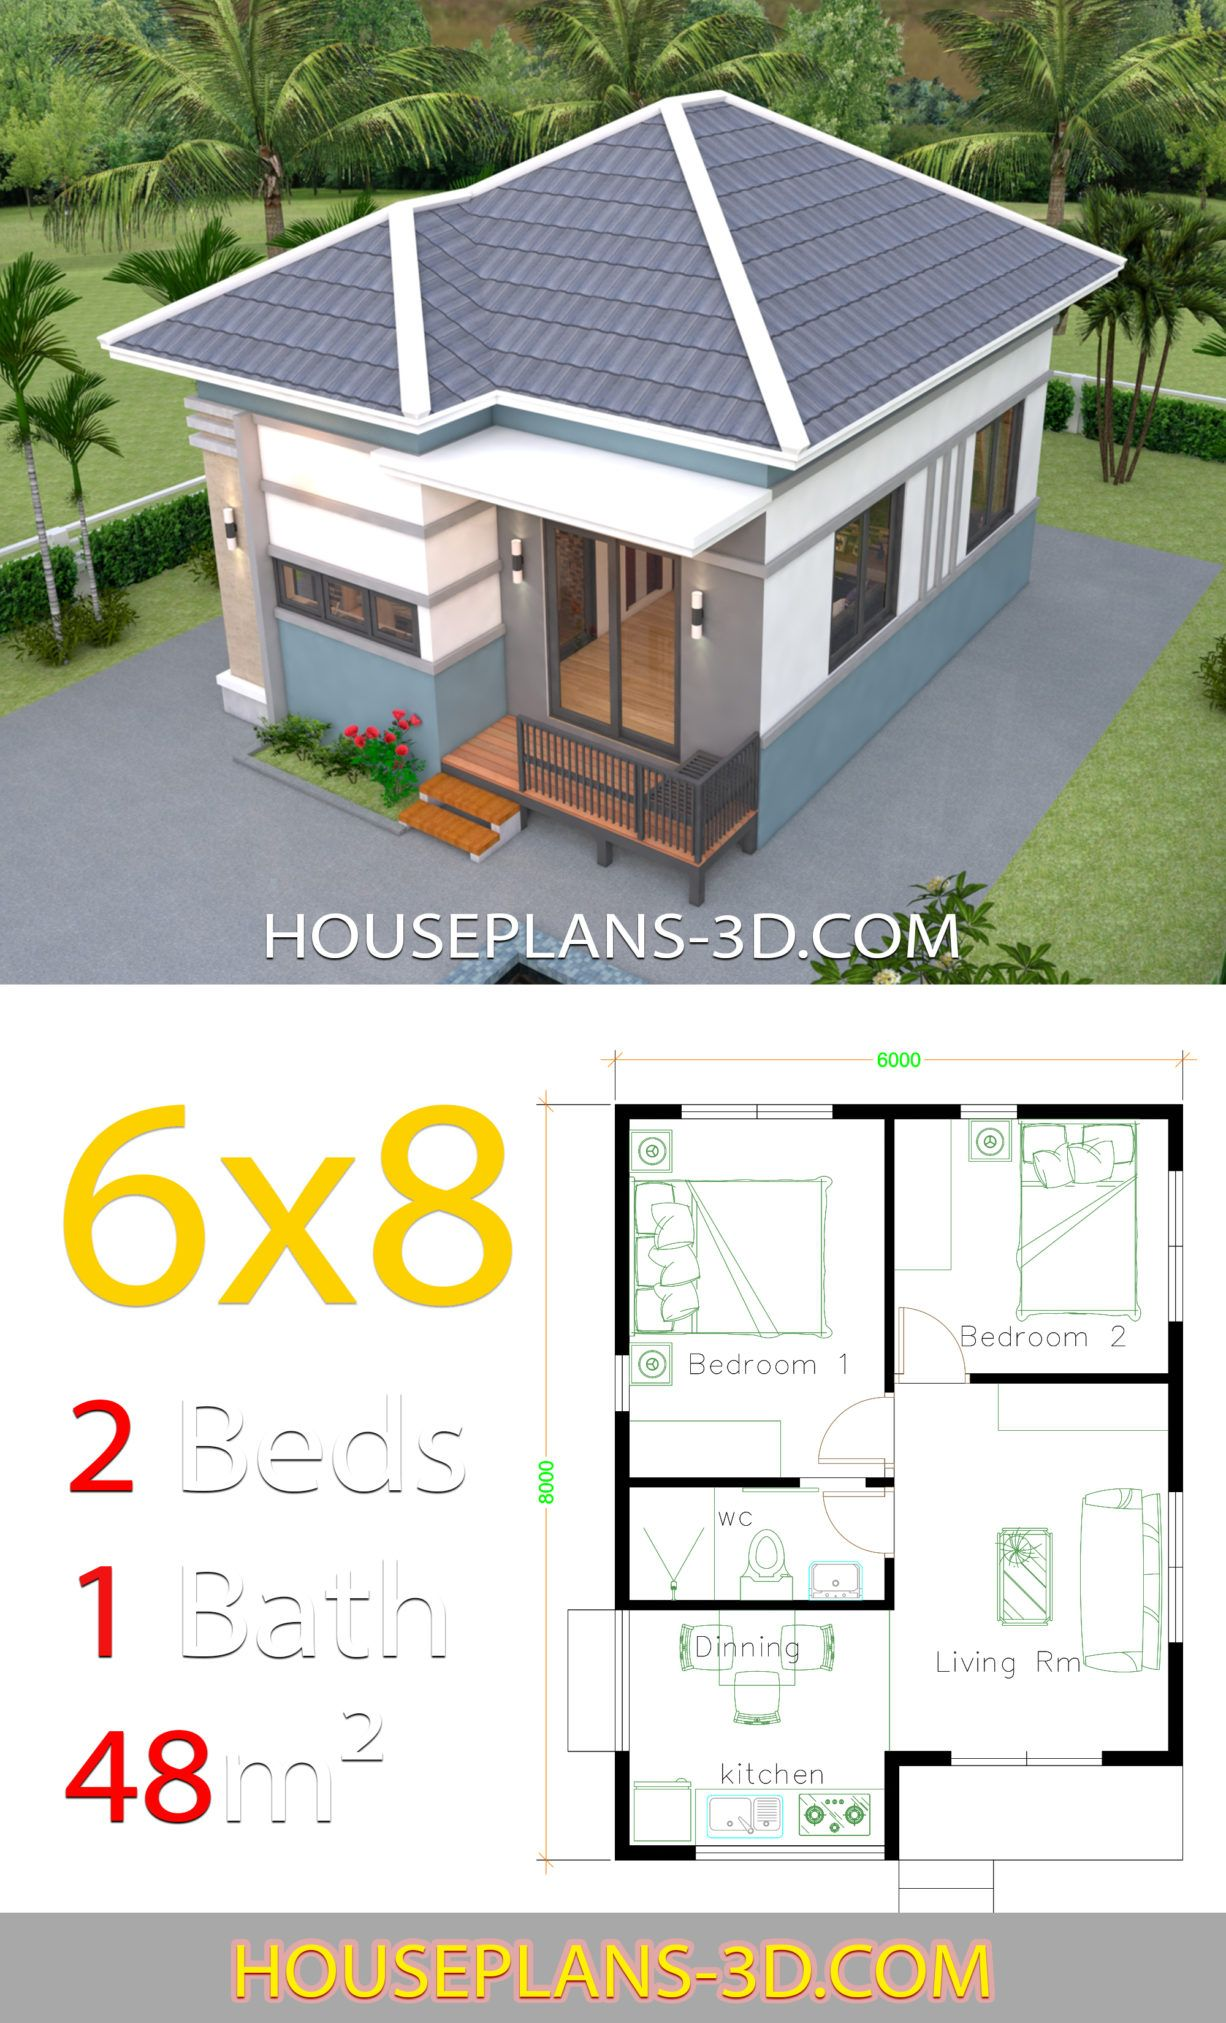 House Design 6x8 with 2 Bedrooms Hip roof - House Plans 3D ...